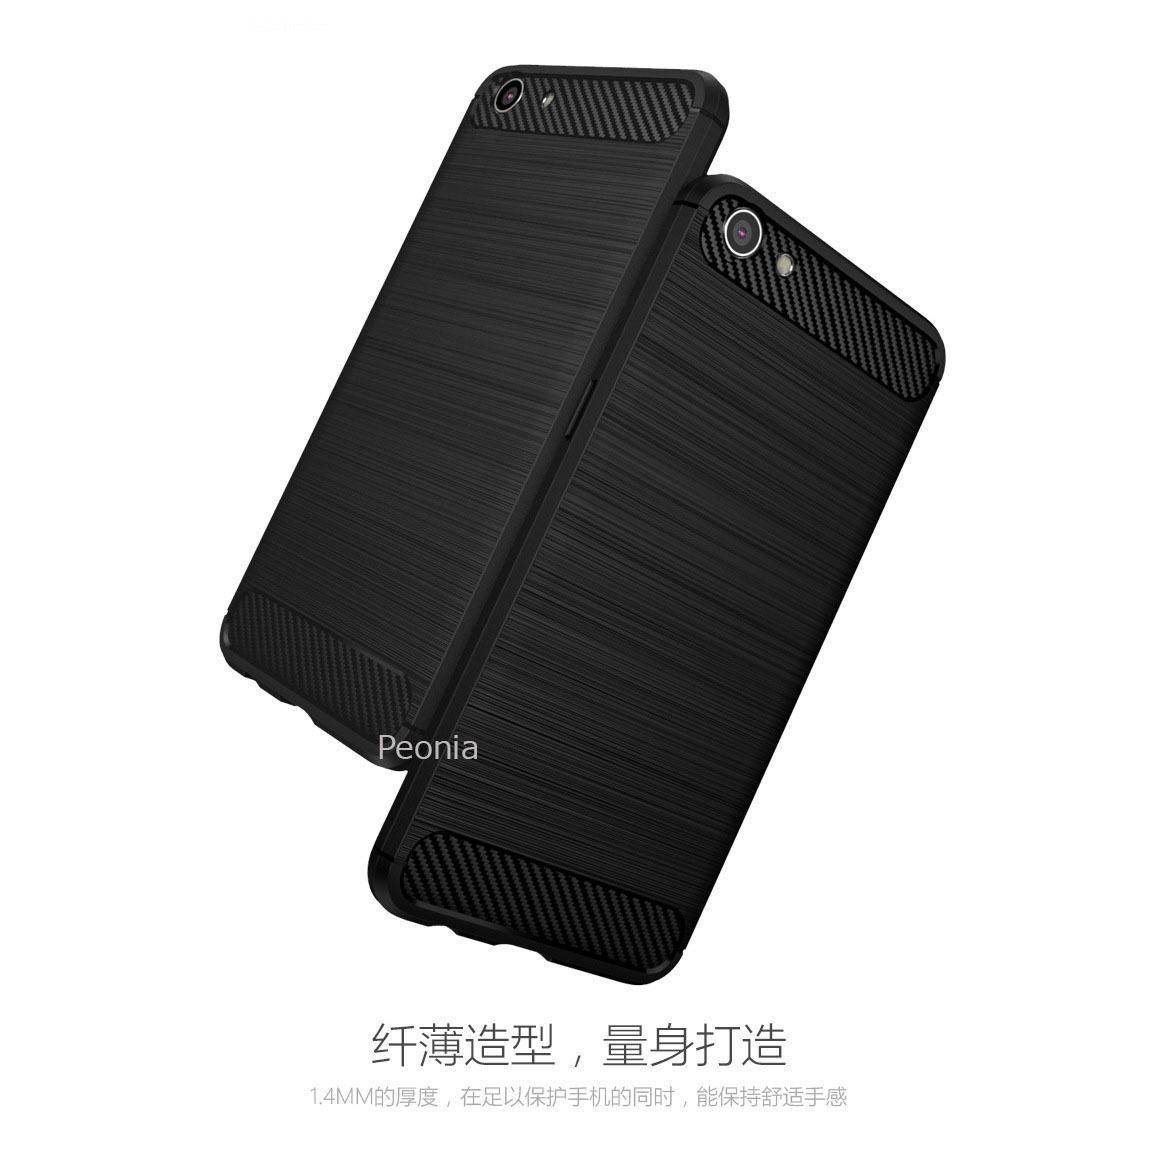 Peonia Carbon Shockproof Hybrid Premium Quality Grade A Case for Oppo F1s / A59 / A59S